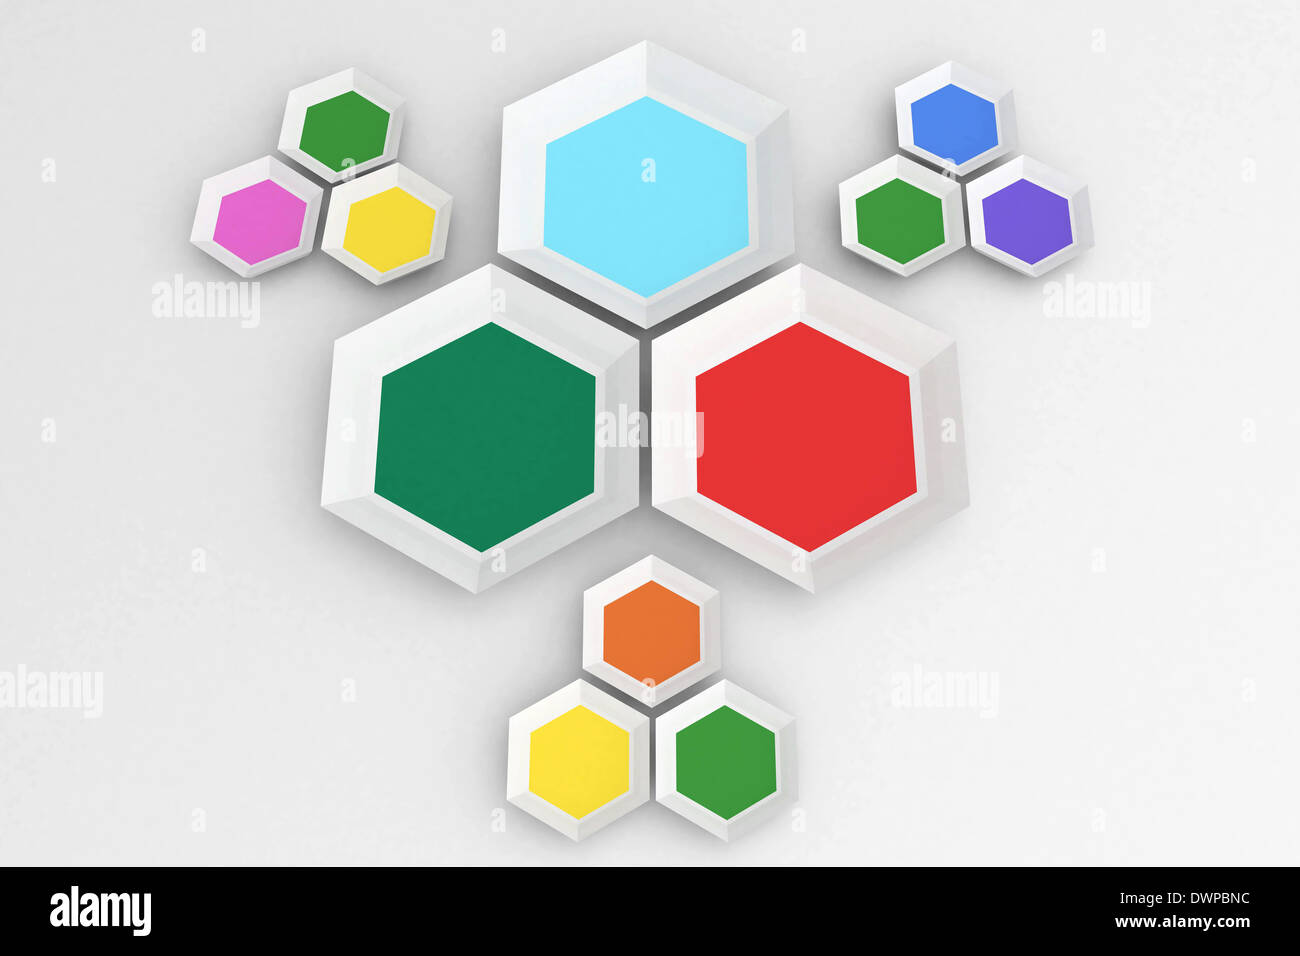 Hexagon shapes - Stock Image